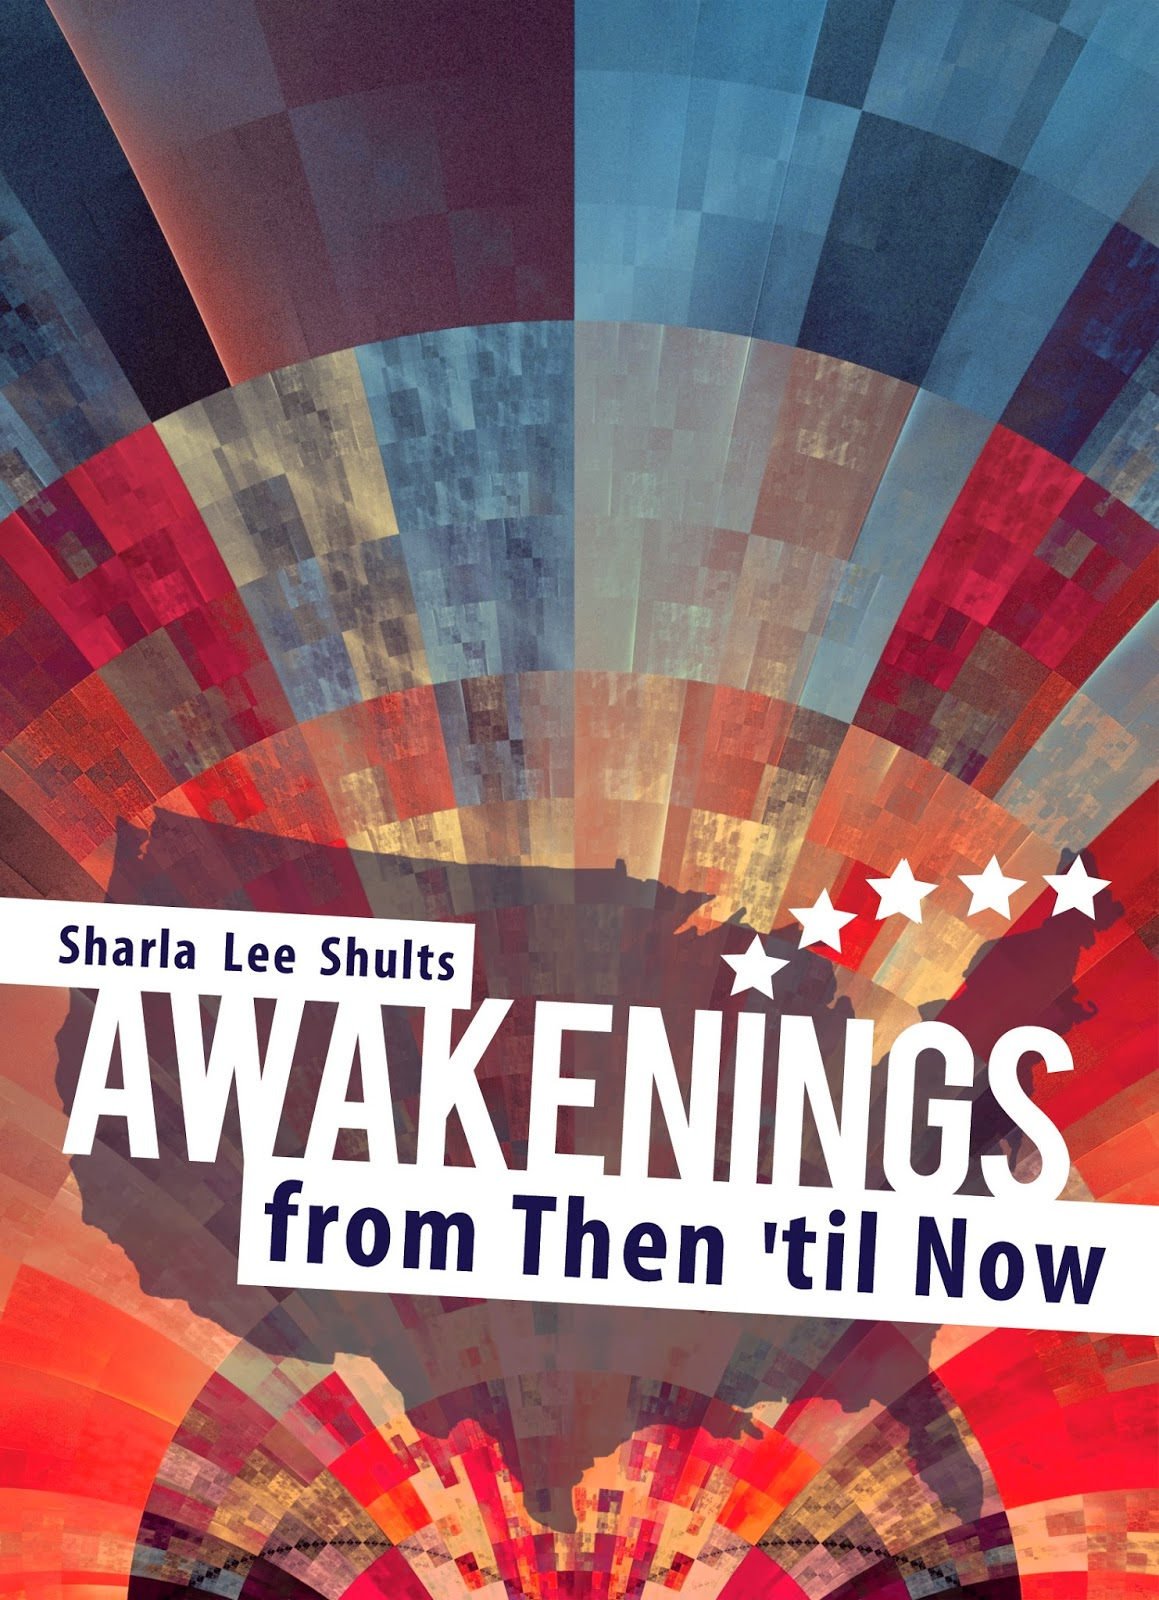 http://www.amazon.com/Awakenings-Then-til-Sharla-Shults/dp/1620247313/ref=la_B007YUYUG4_1_1?s=books&ie=UTF8&qid=1404156501&sr=1-1